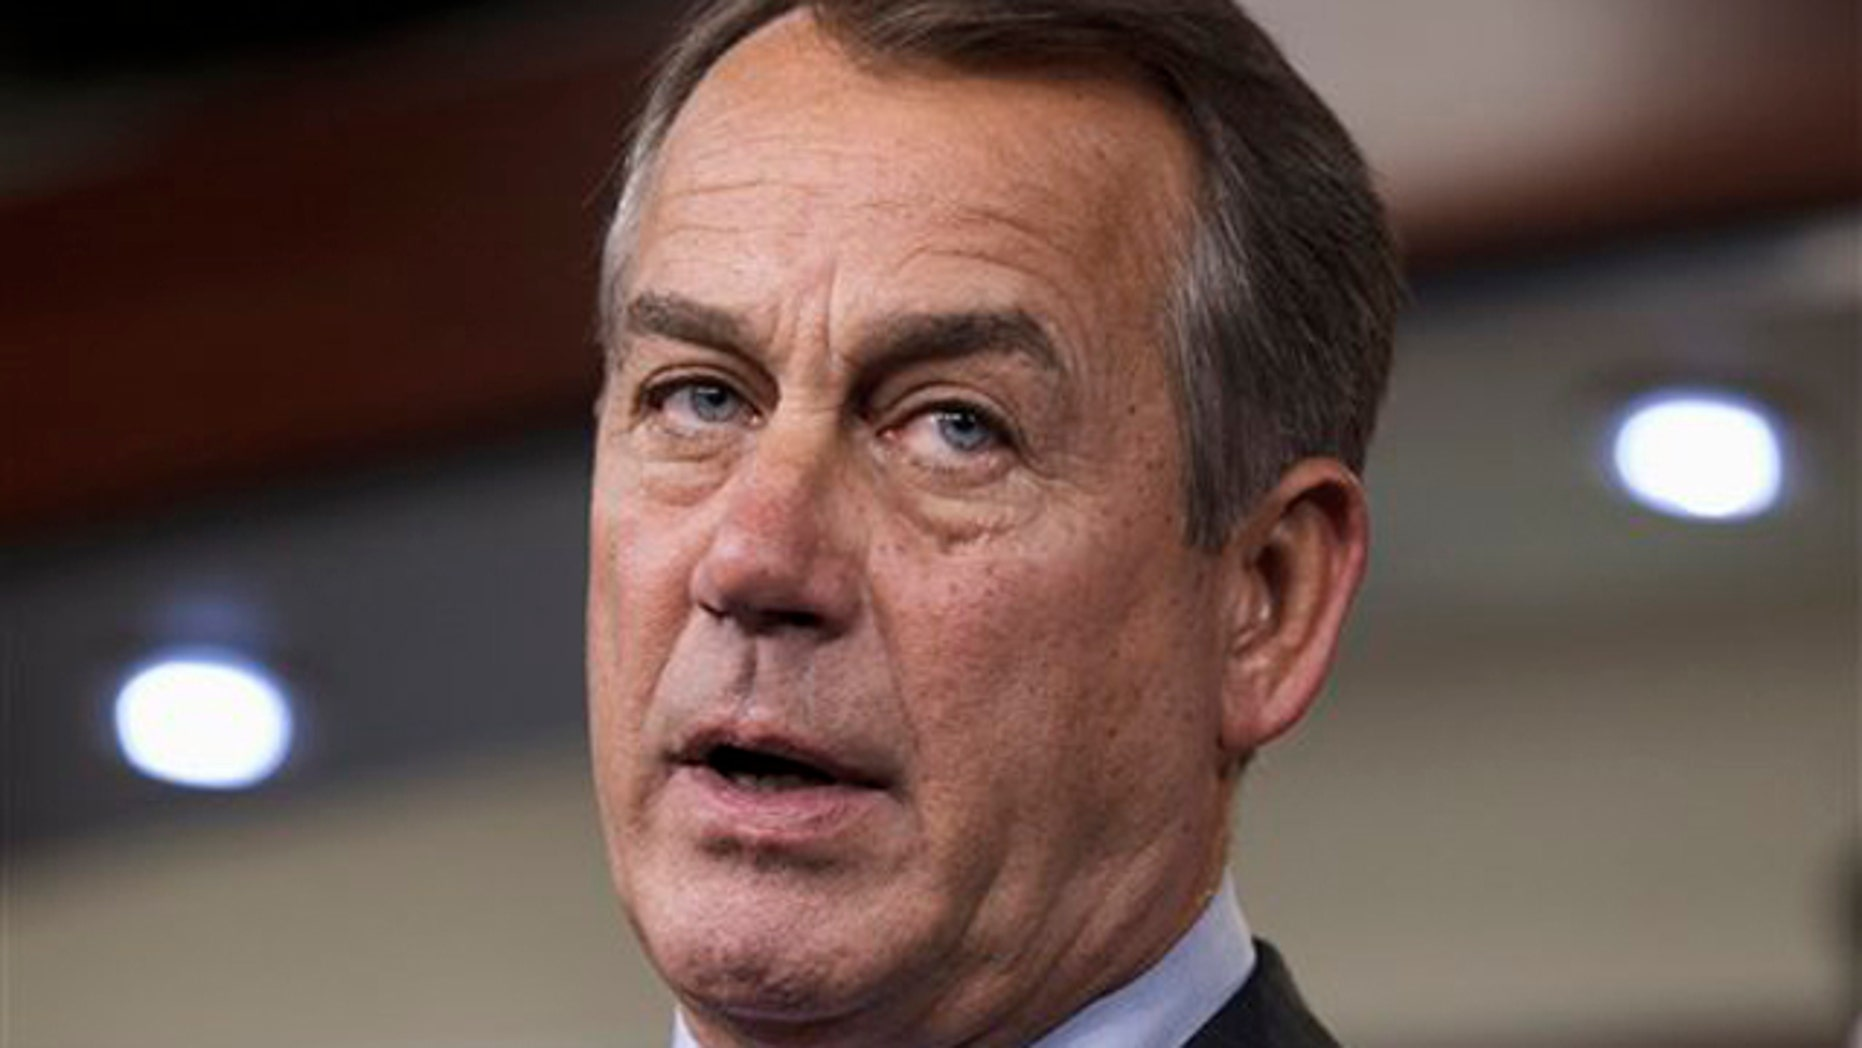 Feb. 16, 2012: House Speaker John Boehner talks about the payroll tax cut negotiations during a news conference on Capitol Hill.